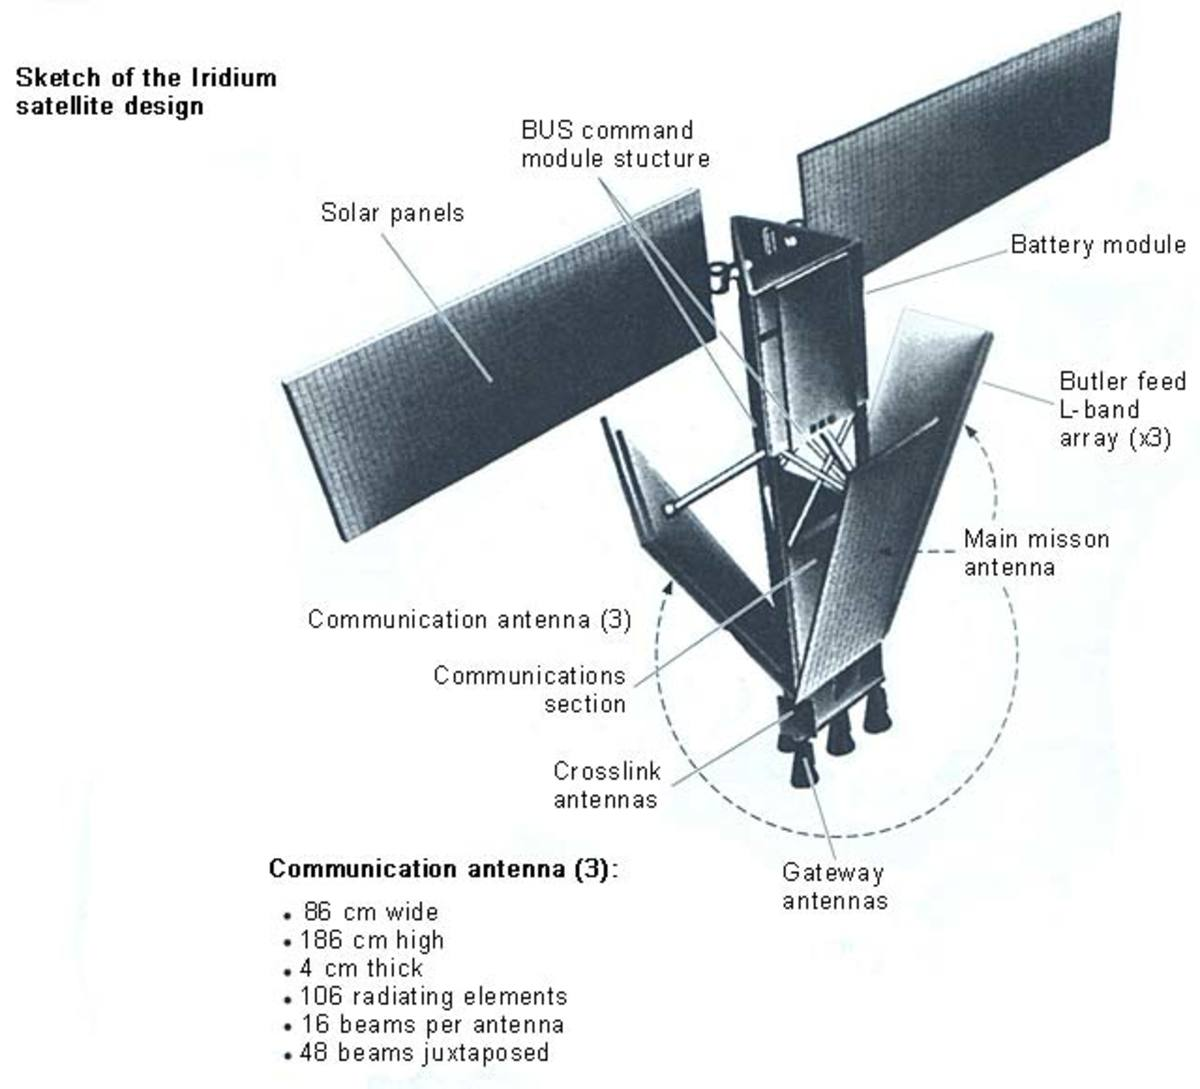 Sketch of the Iridium satellite design